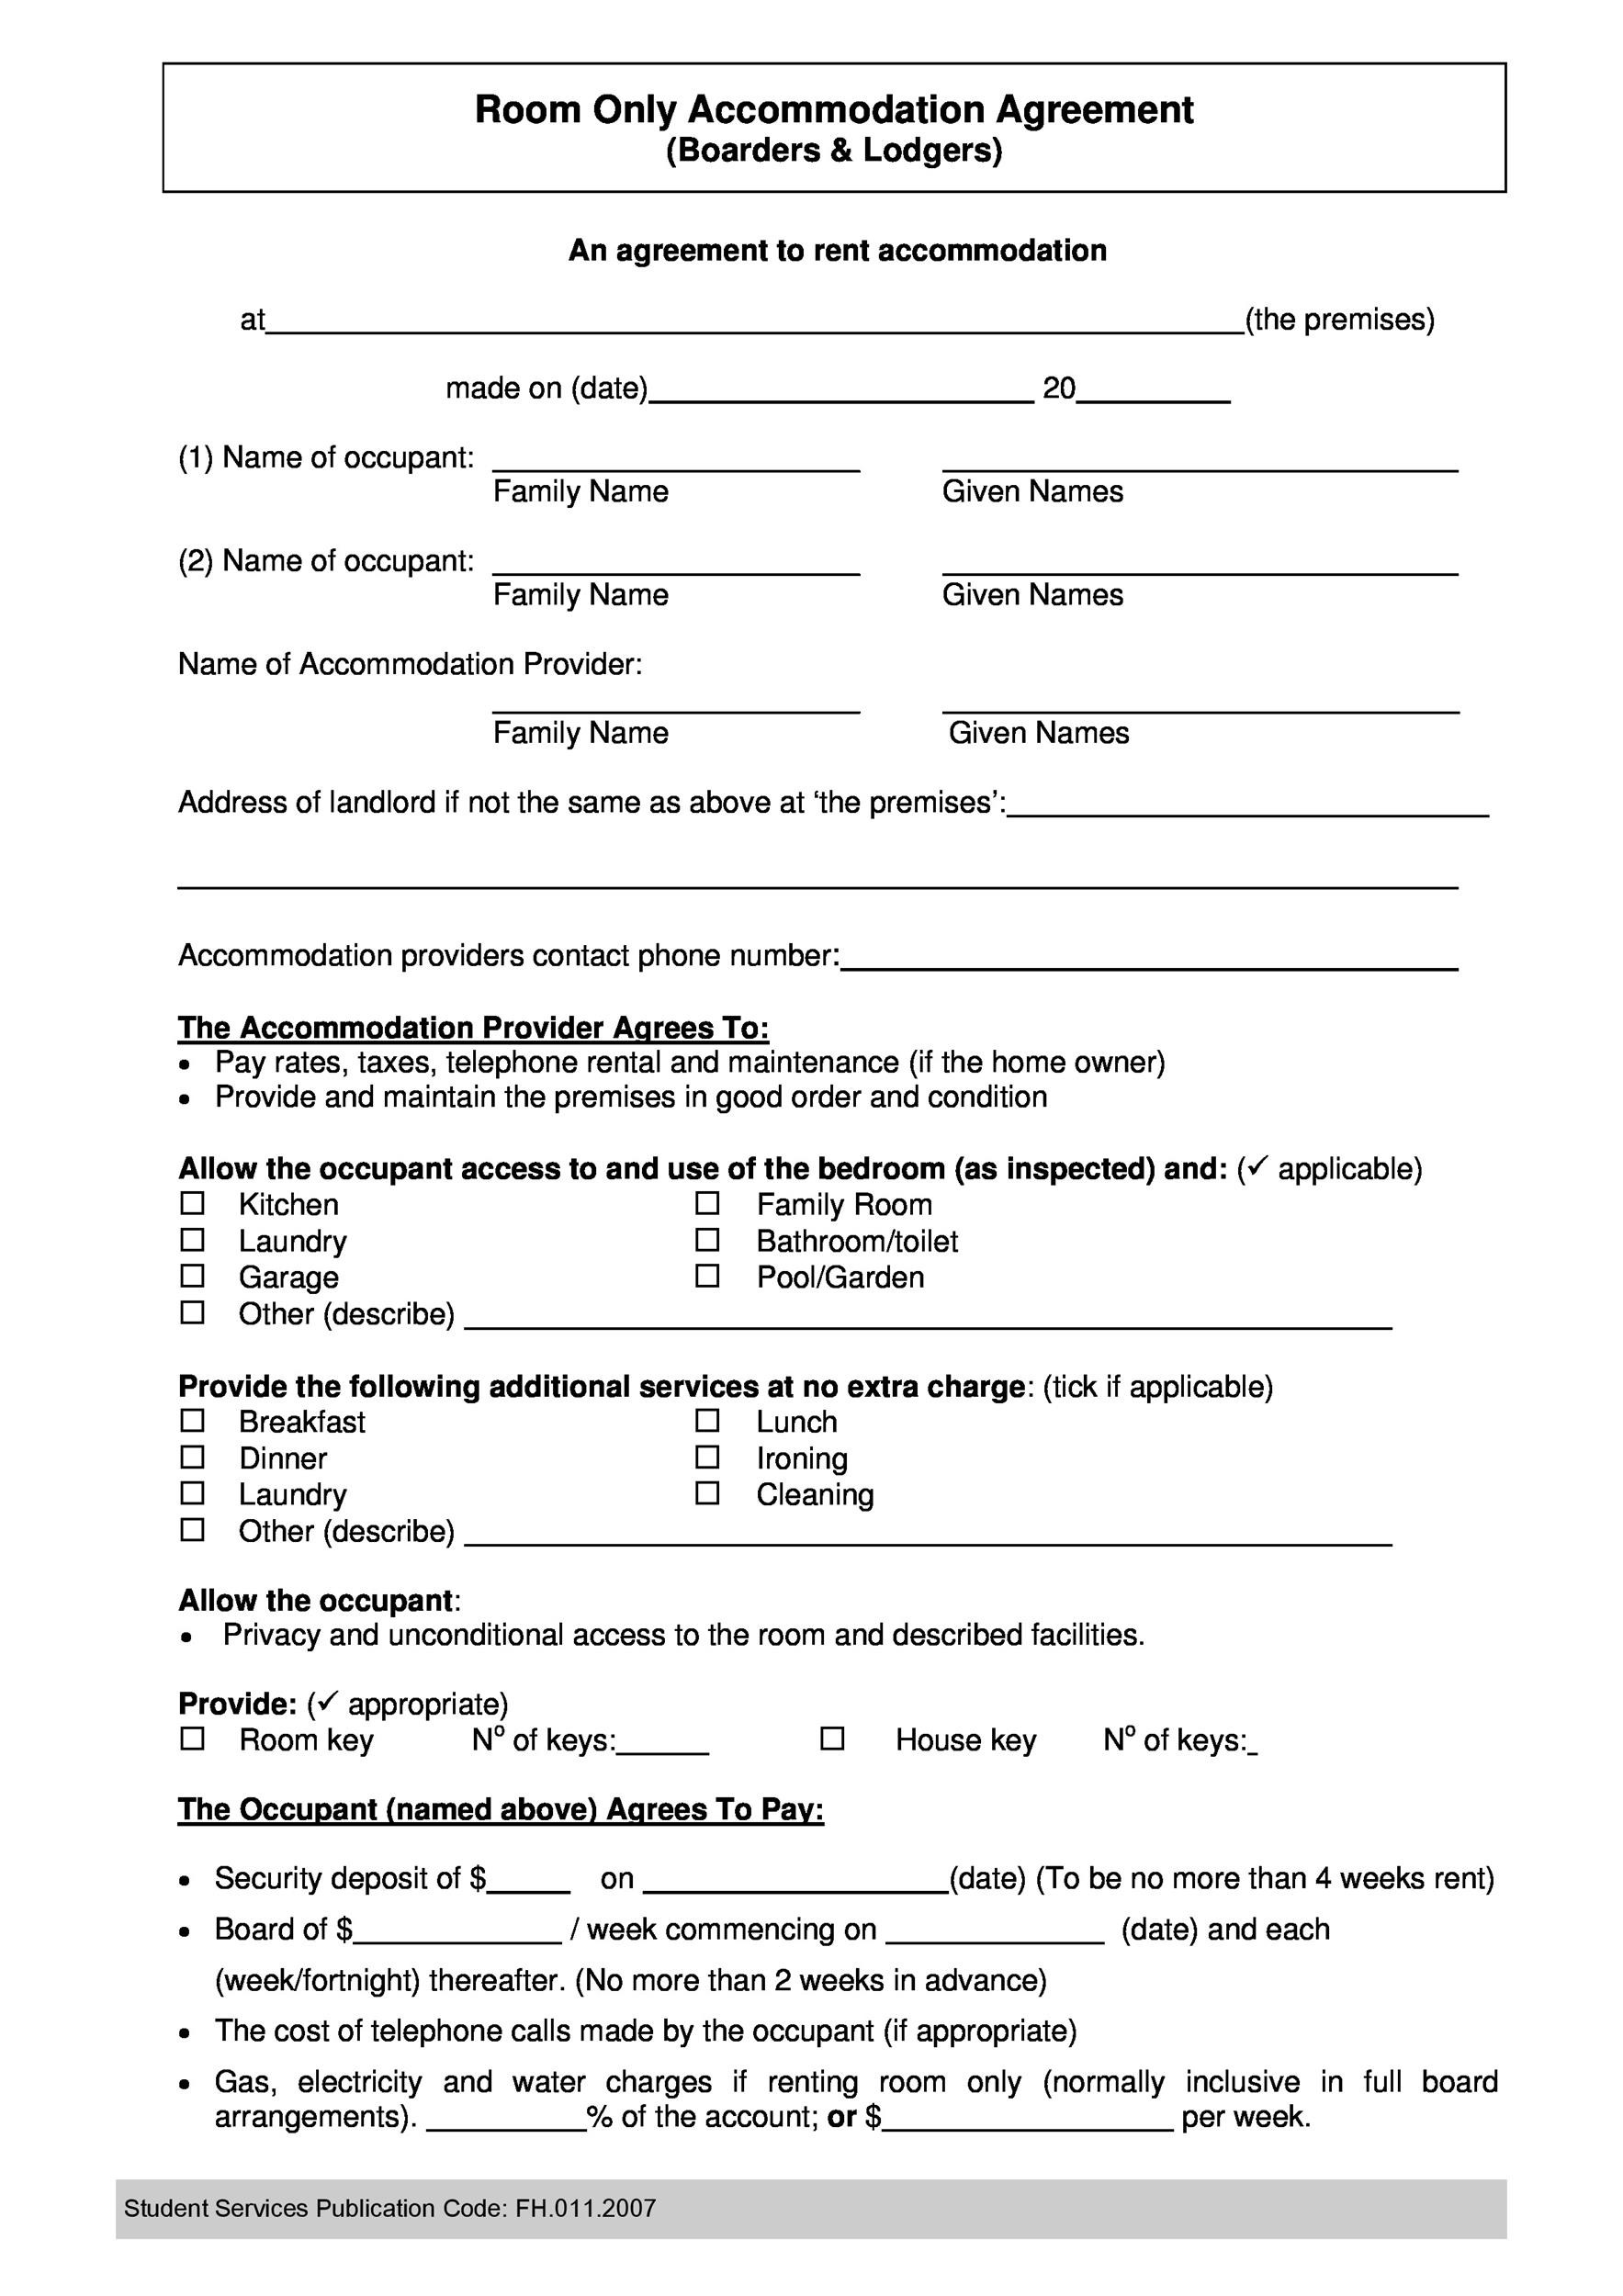 Legal Roommate Agreement Contract Sample Application Letter Fresh